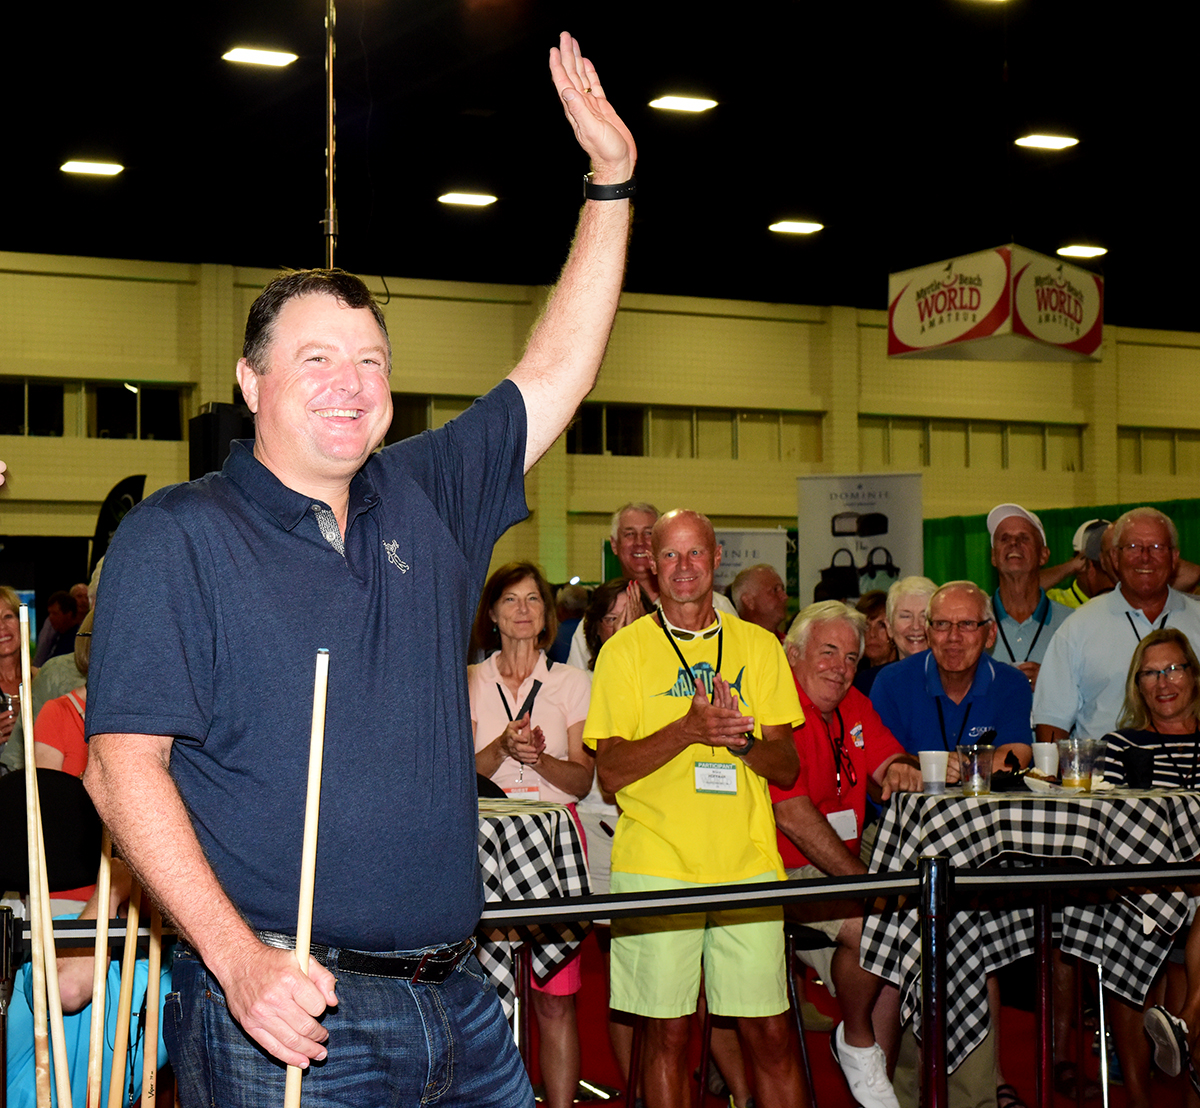 Charlie Rymer Celebrity Guests Announced